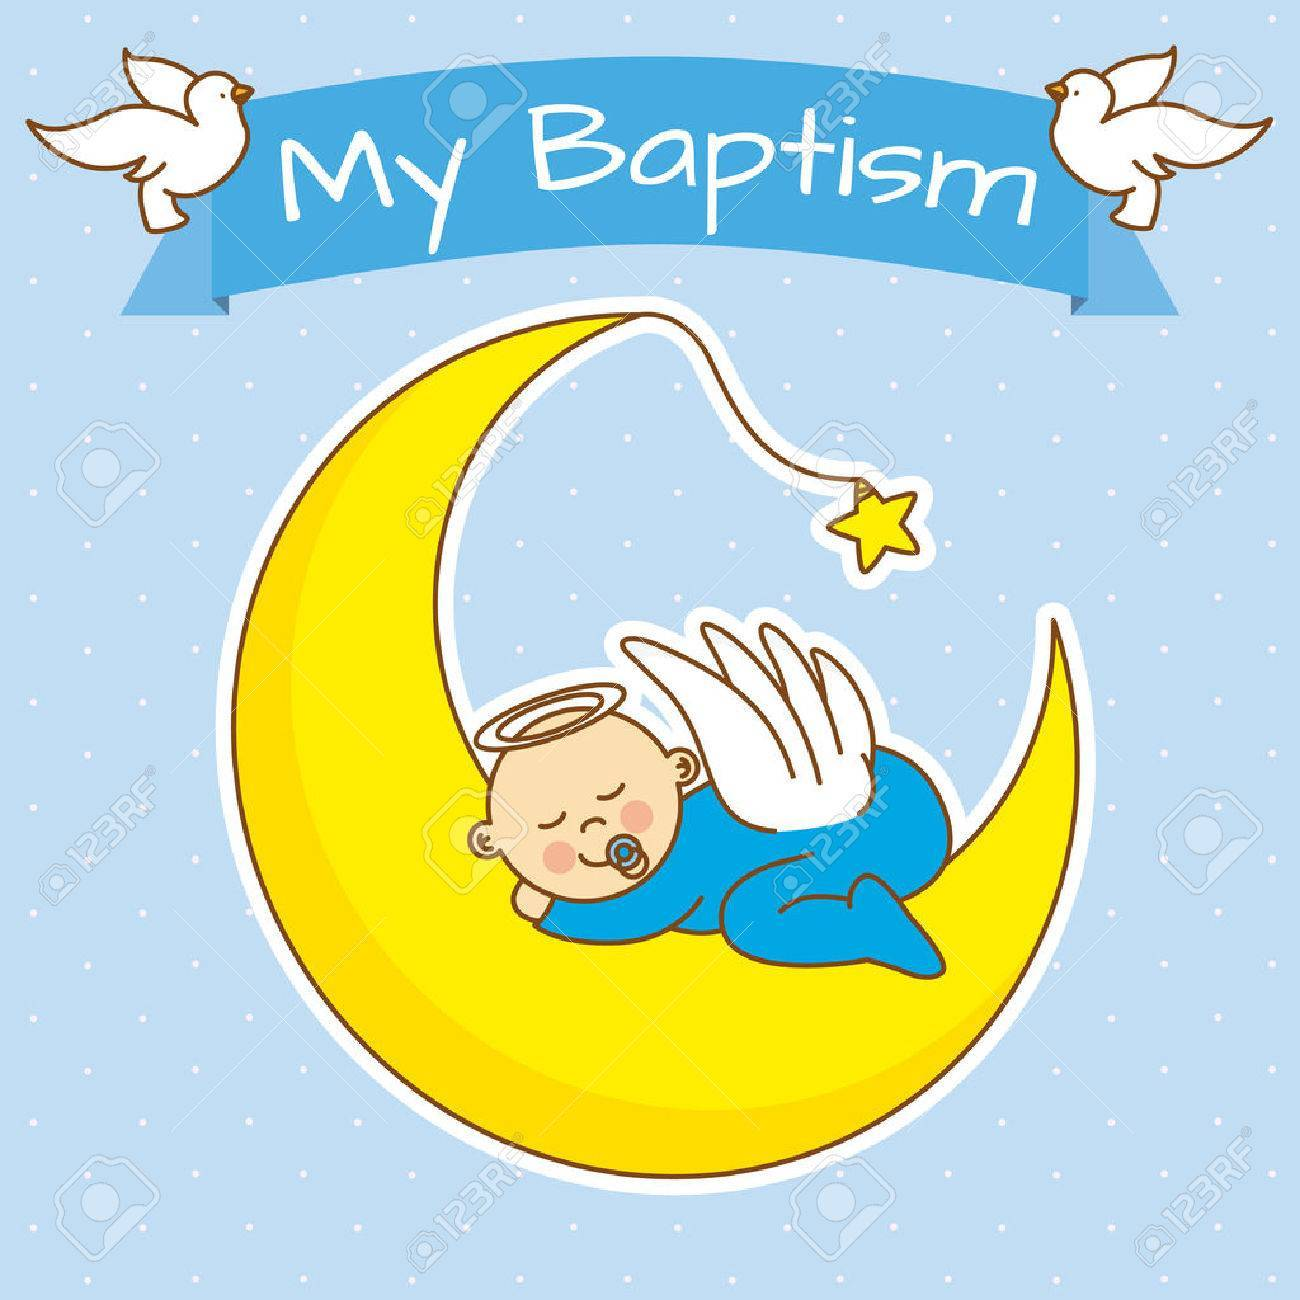 Free baby christening clipart 8 » Clipart Portal.